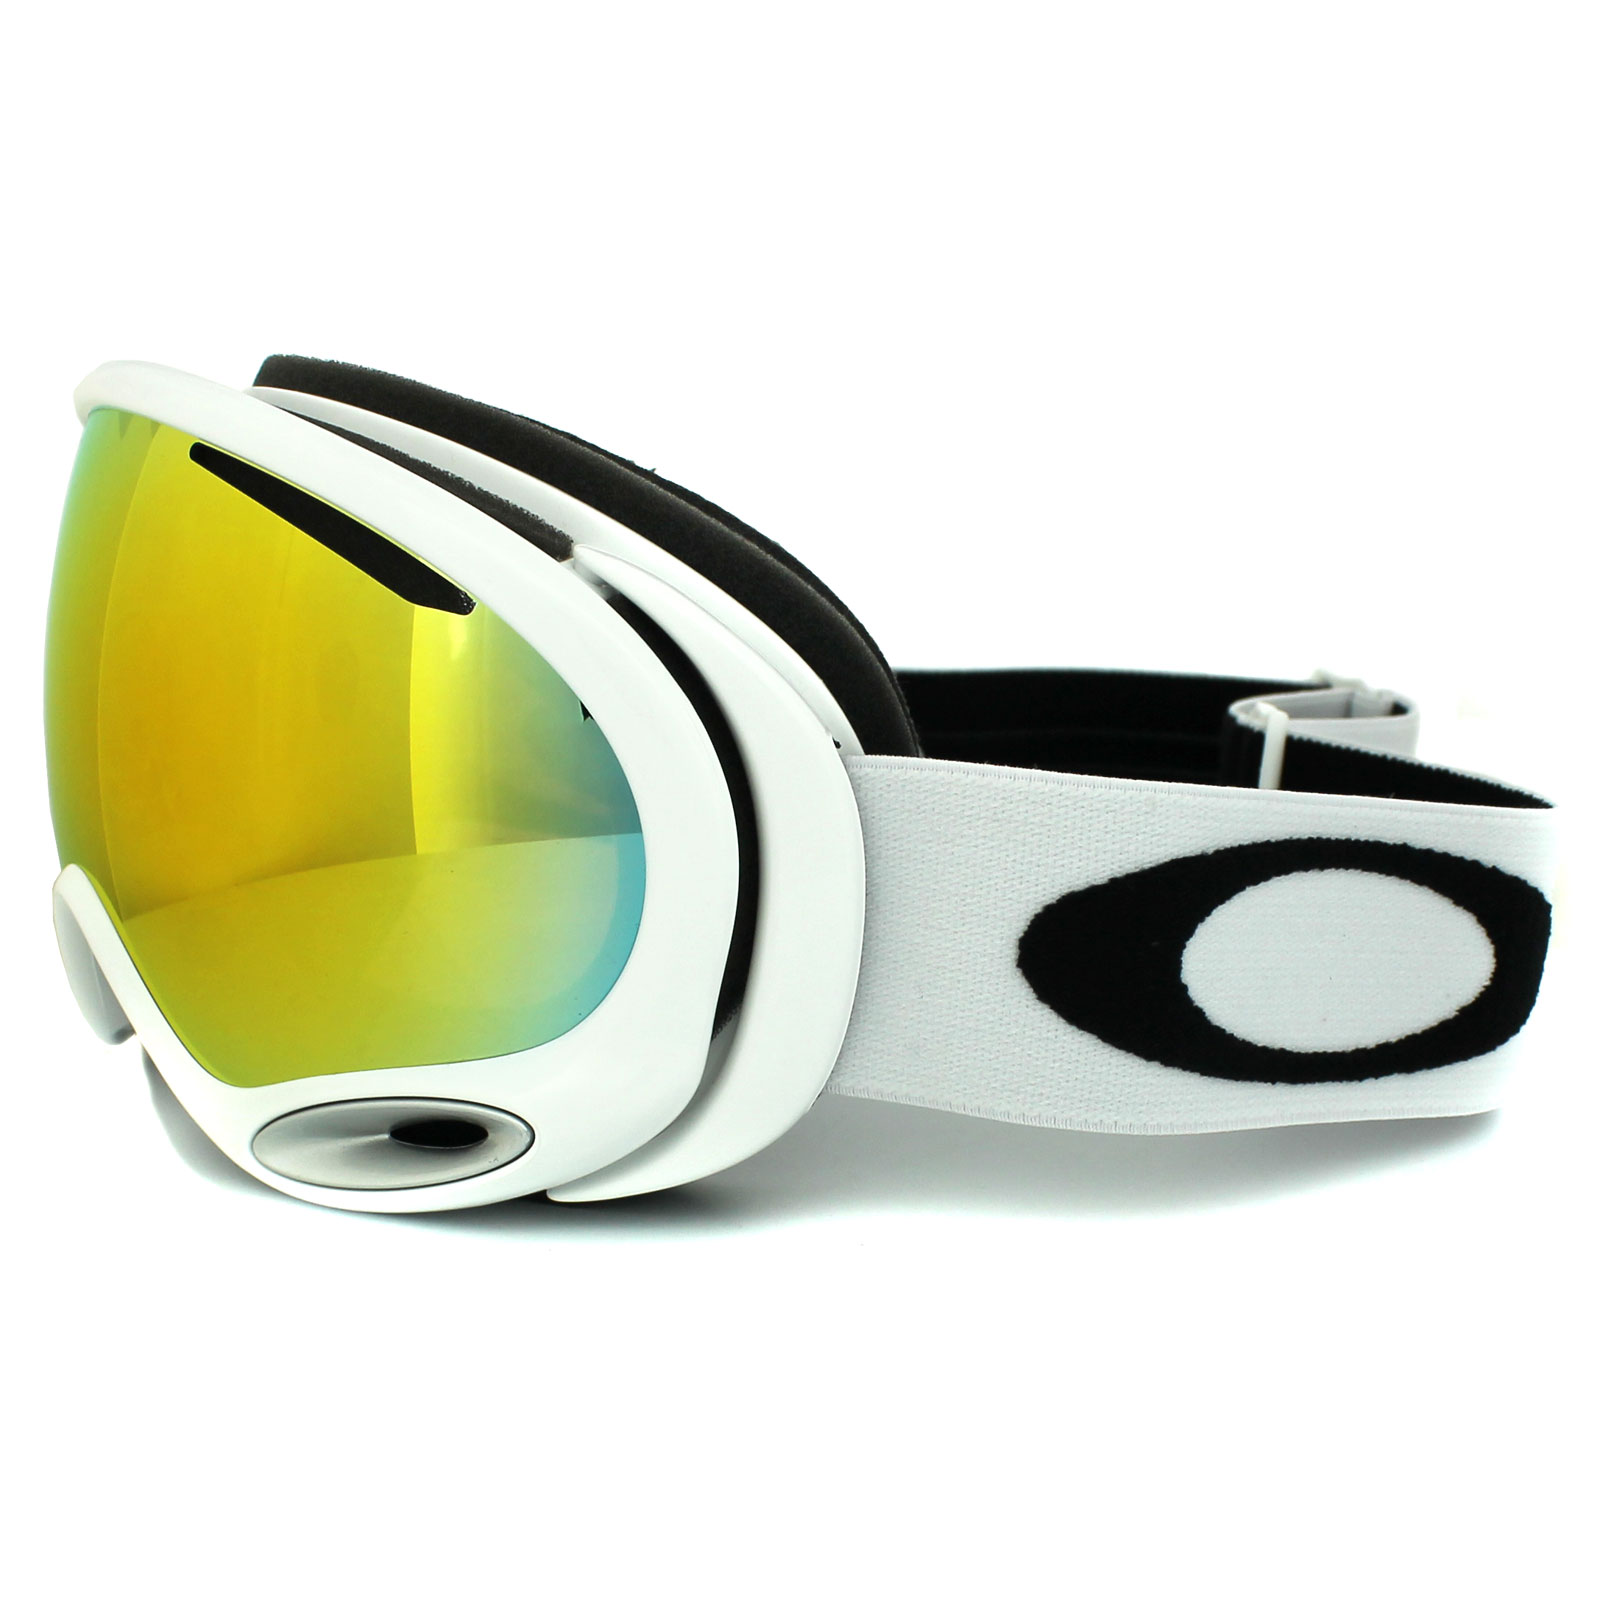 oakley ski goggles sale  oakley ski goggles a frame 2.0 59 568 polished white fire iridium